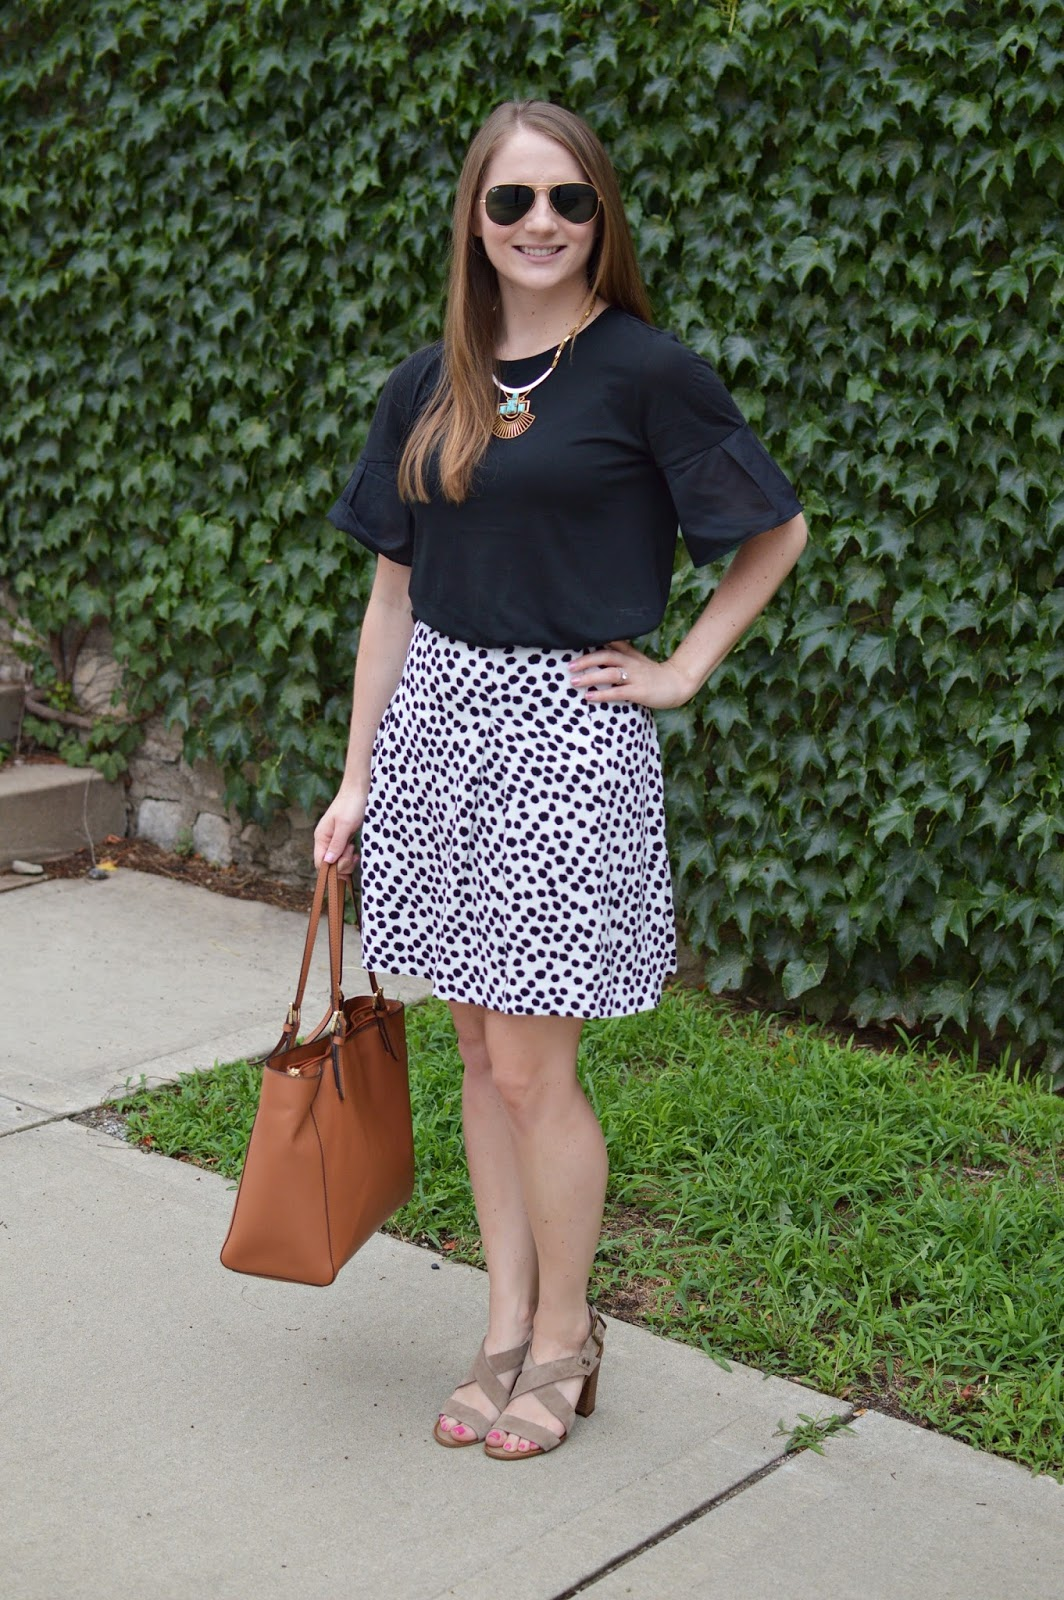 black and white outfit ideas | neutral outfit ideas | what to wear to work this summer | cute outfit ideas for work this summer | how to look cute and still be professional at work |